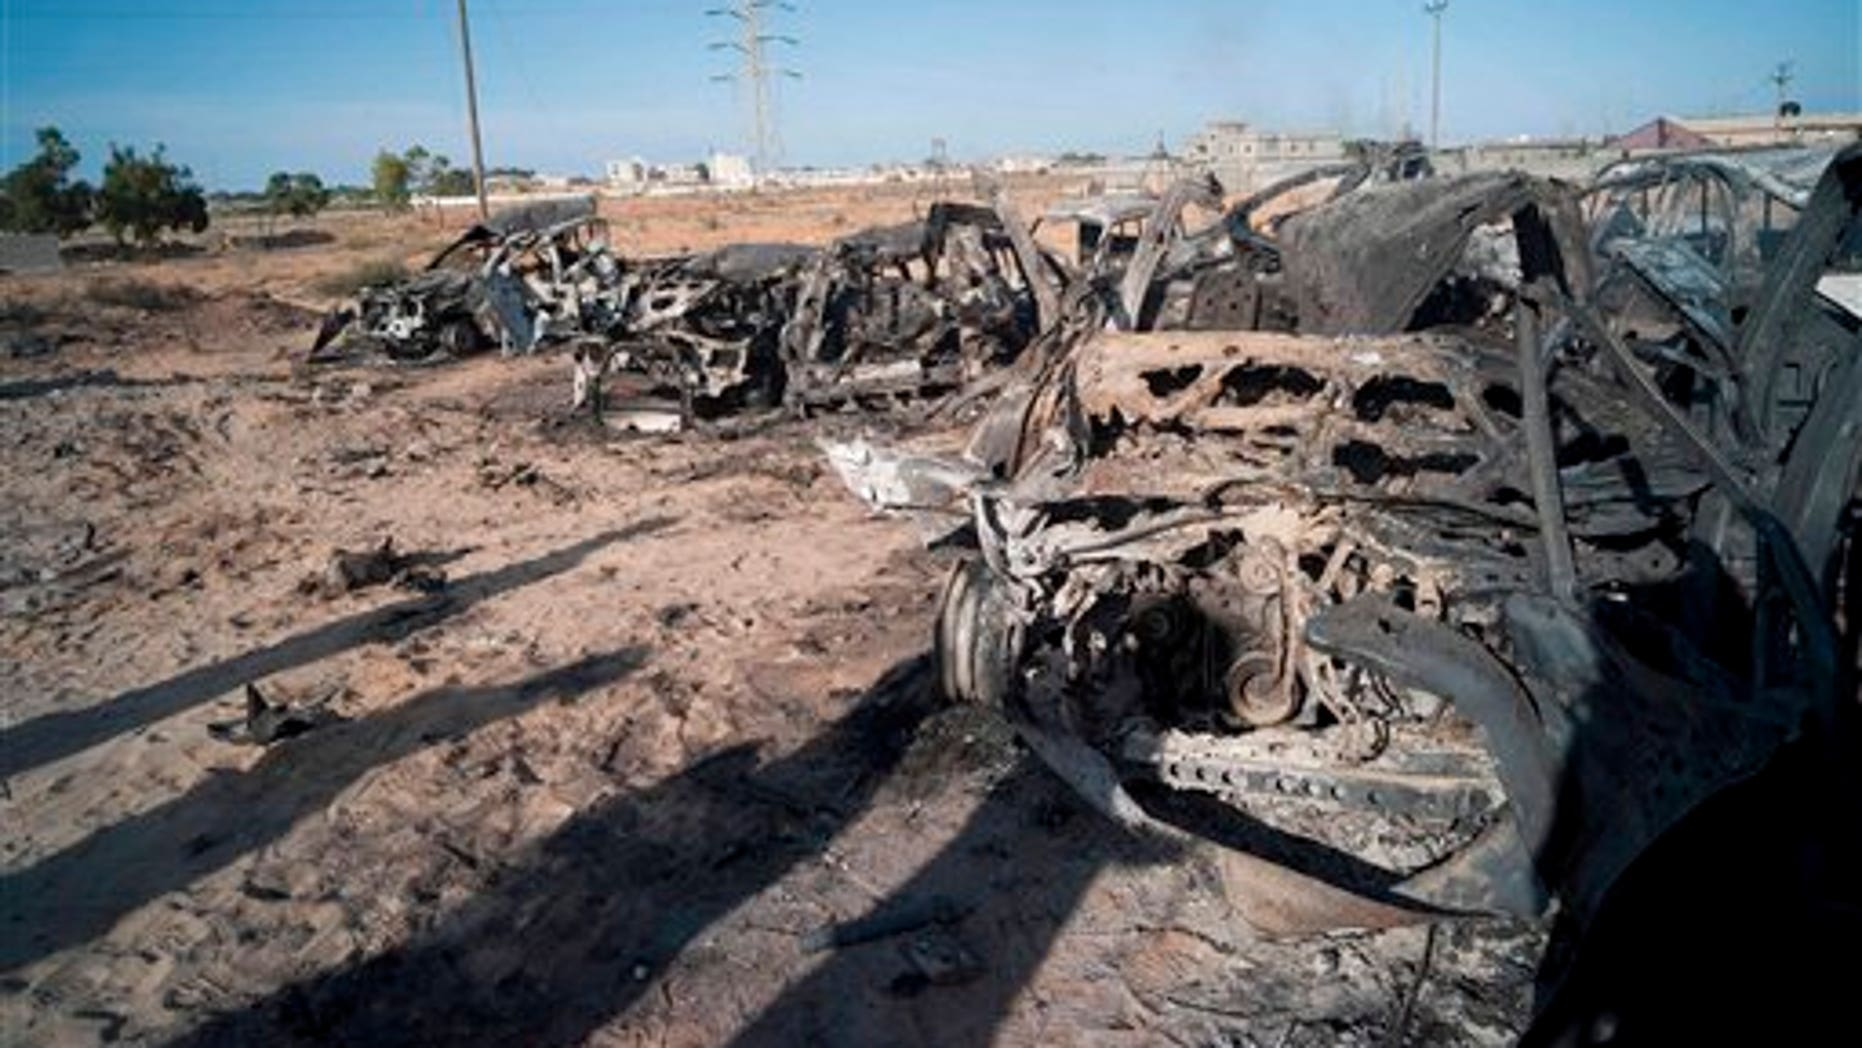 Oct. 20: The wreckage of burnt vehicles from a convoy of pro-Qaddafi fighters trying to flee the town of Sirte, Lybia, lie on the edge of town.